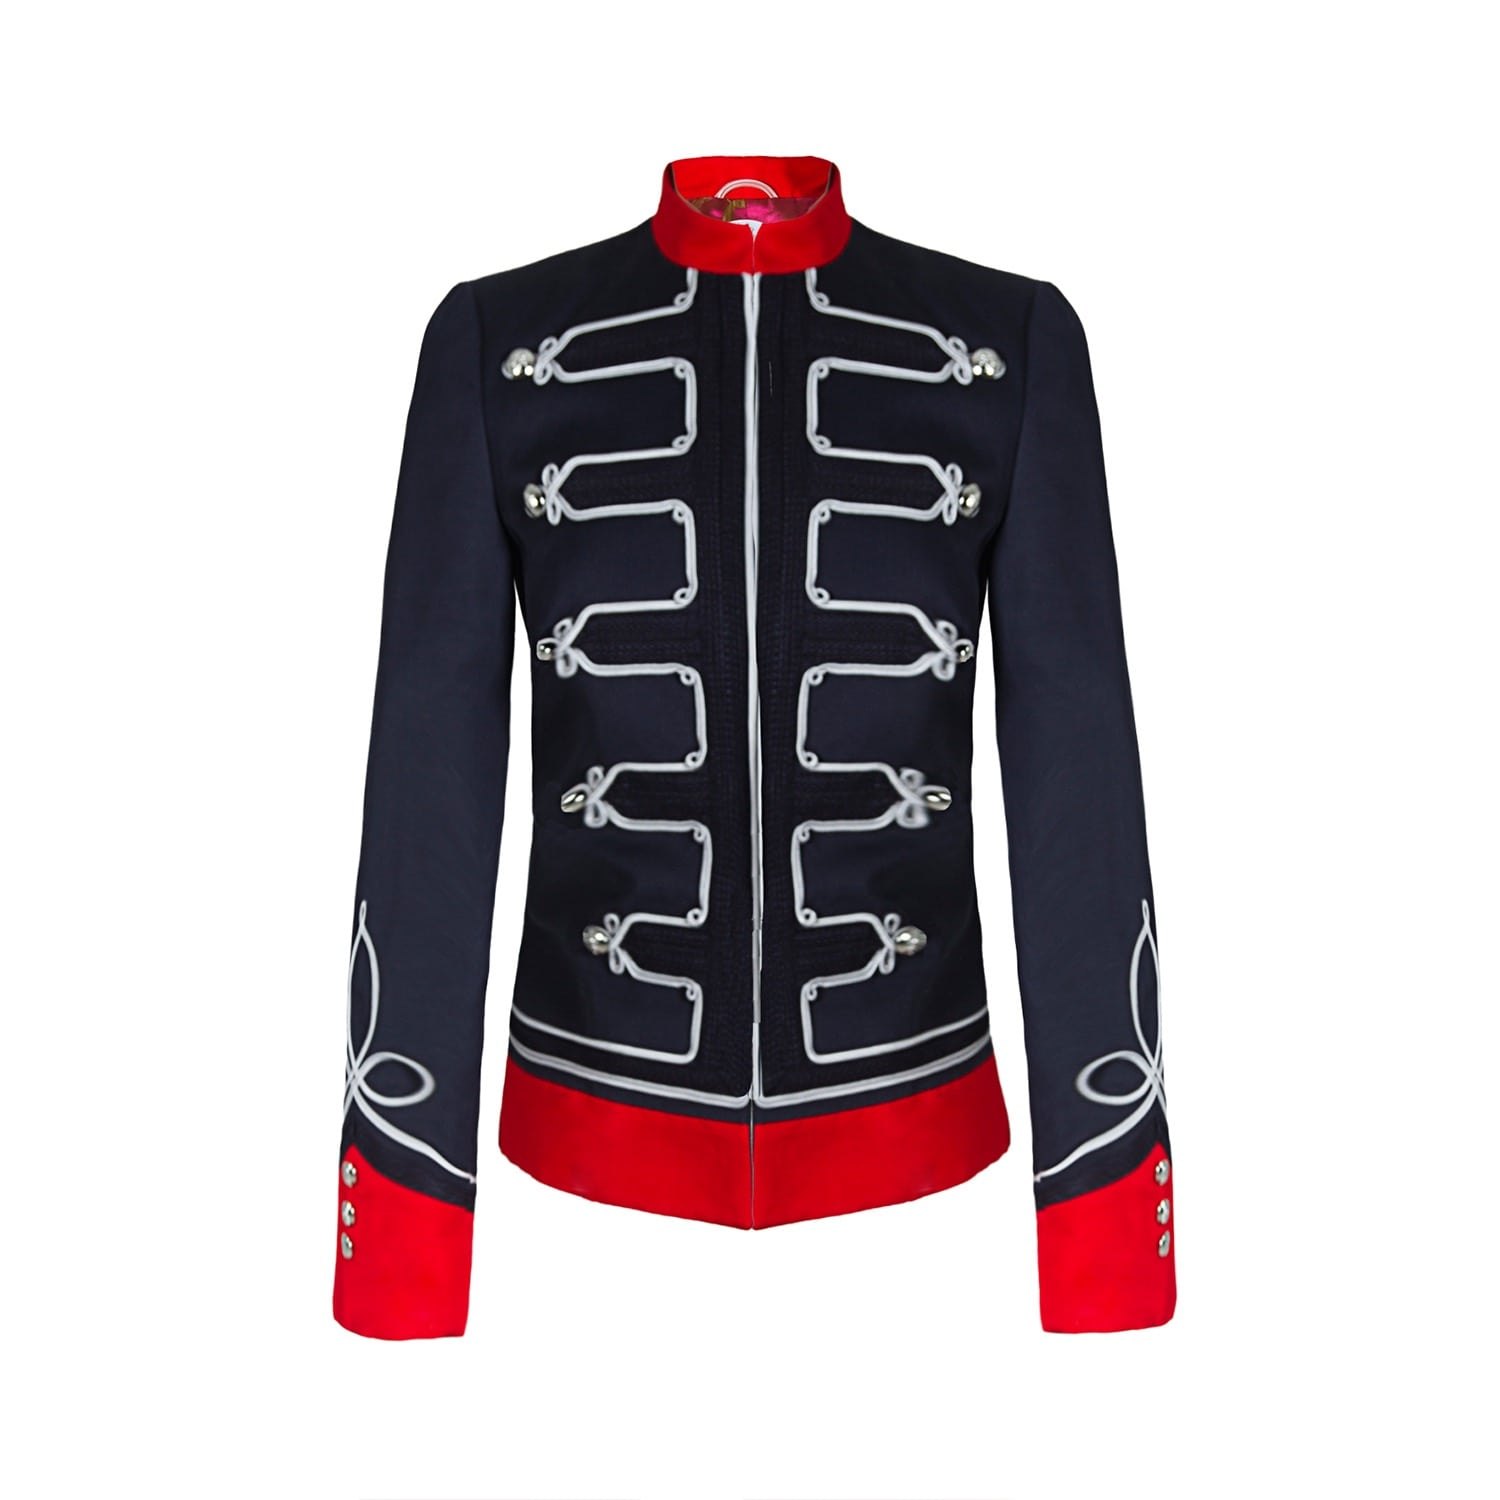 72bbb1872d8 Navy Blue Military Jacket With Embroidiery by The Extreme Collection